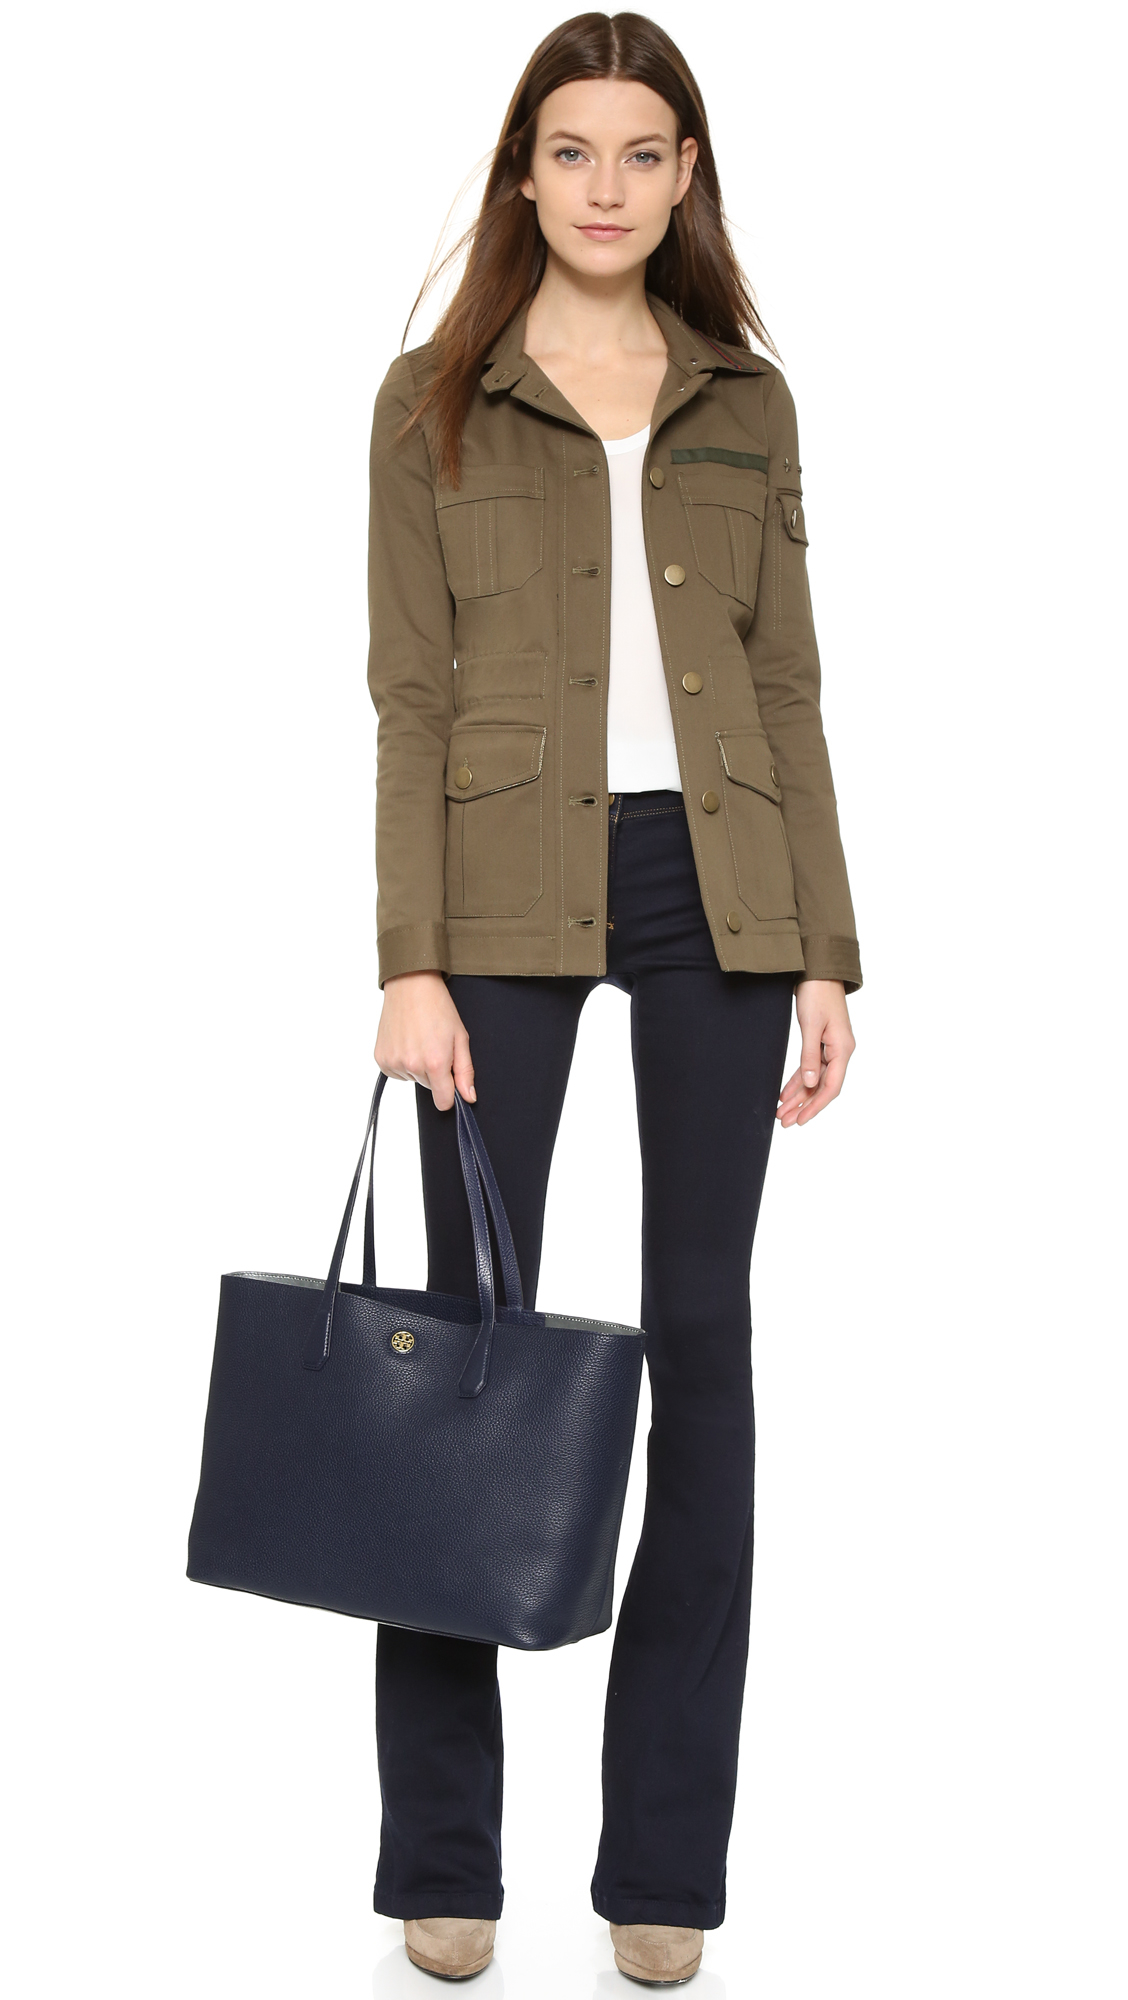 b30f3ff184 Tory Burch Perry Tote - Tory Navy in Blue - Lyst